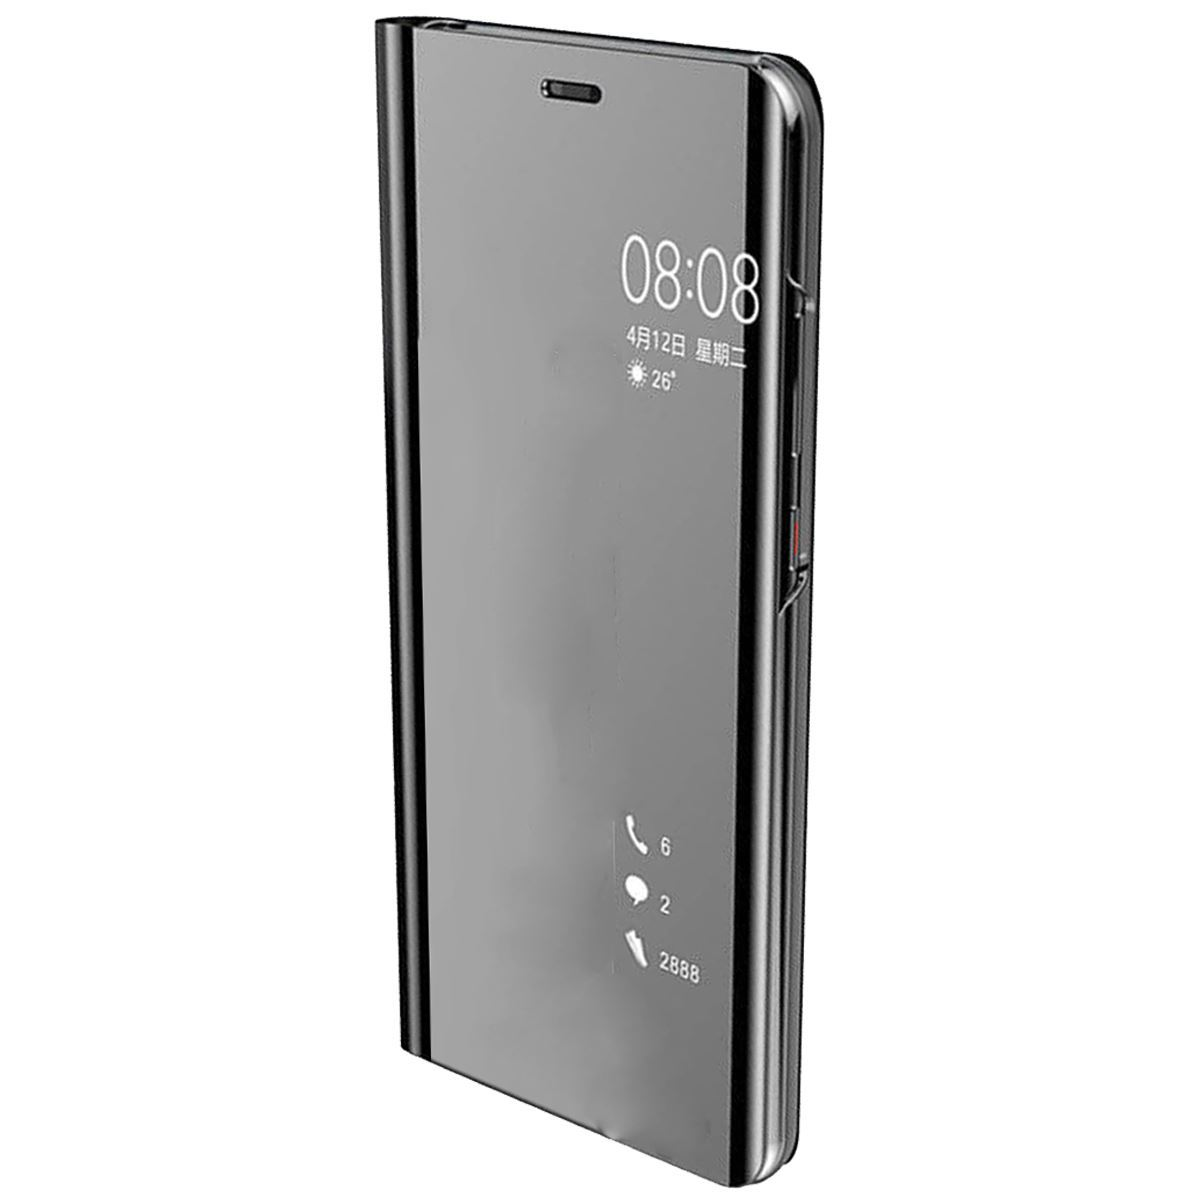 Huawei P10 Case Smart View Mirror Flip Stand Cover - Black